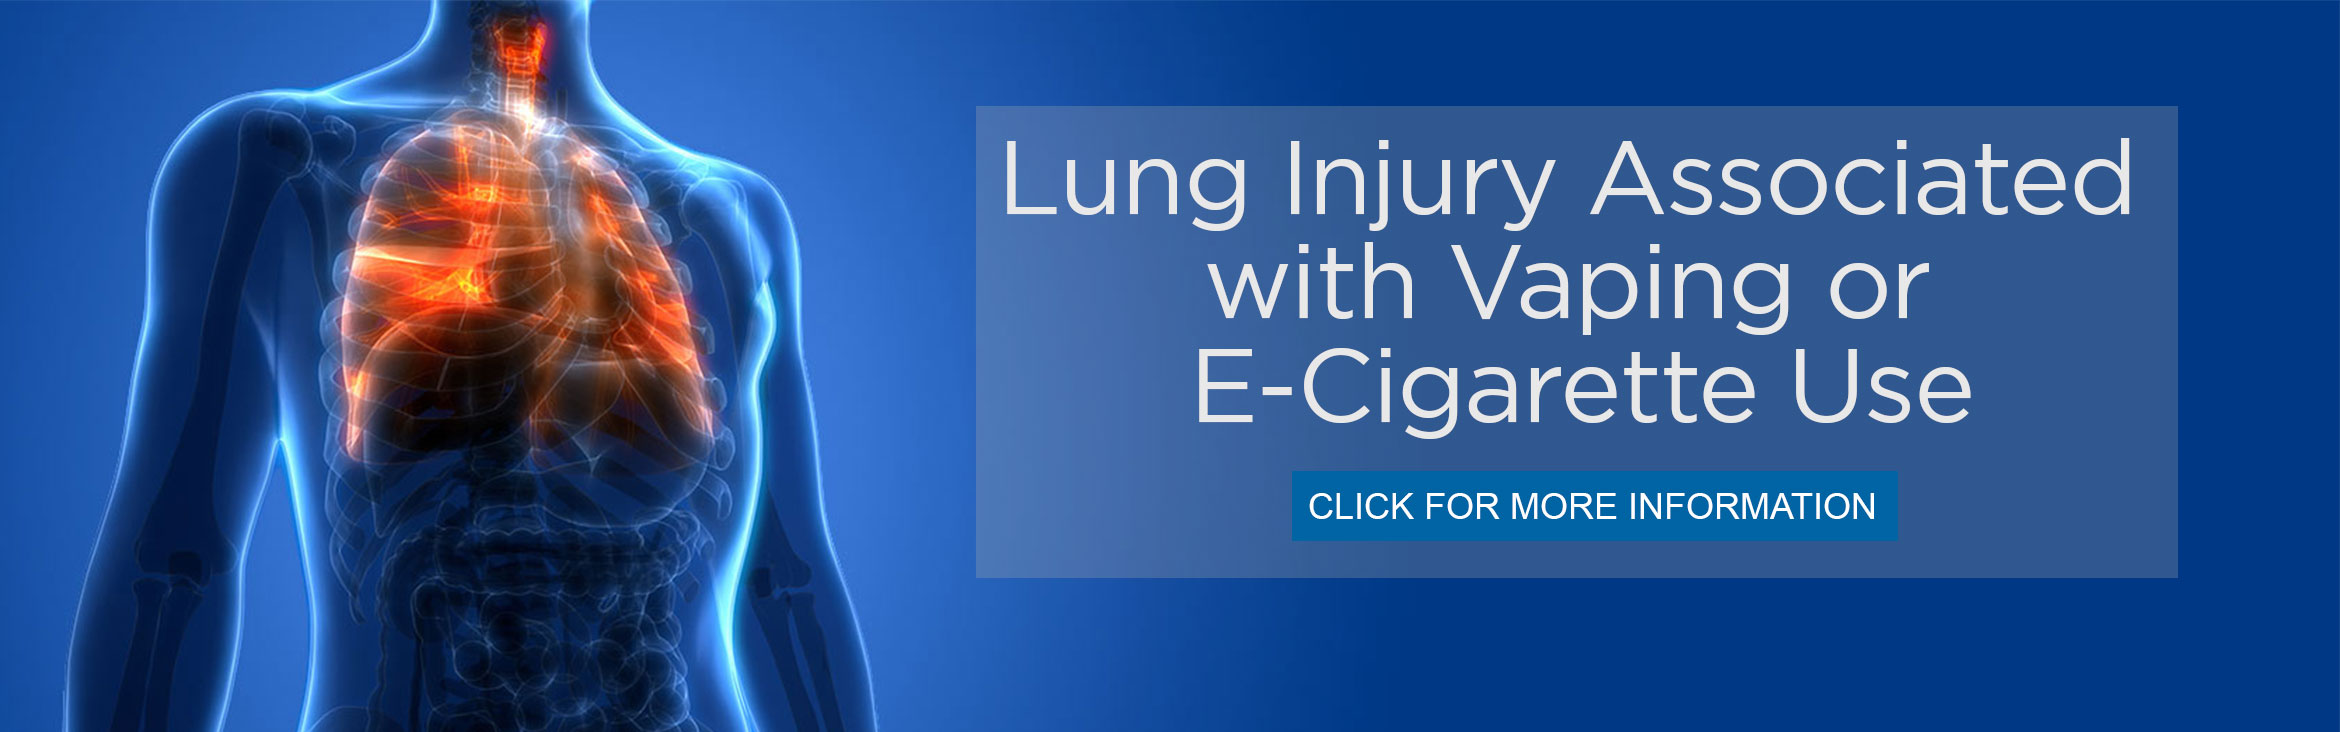 Lung Injury Associated with Vaping or E-Cigarette Use Click Here for more information